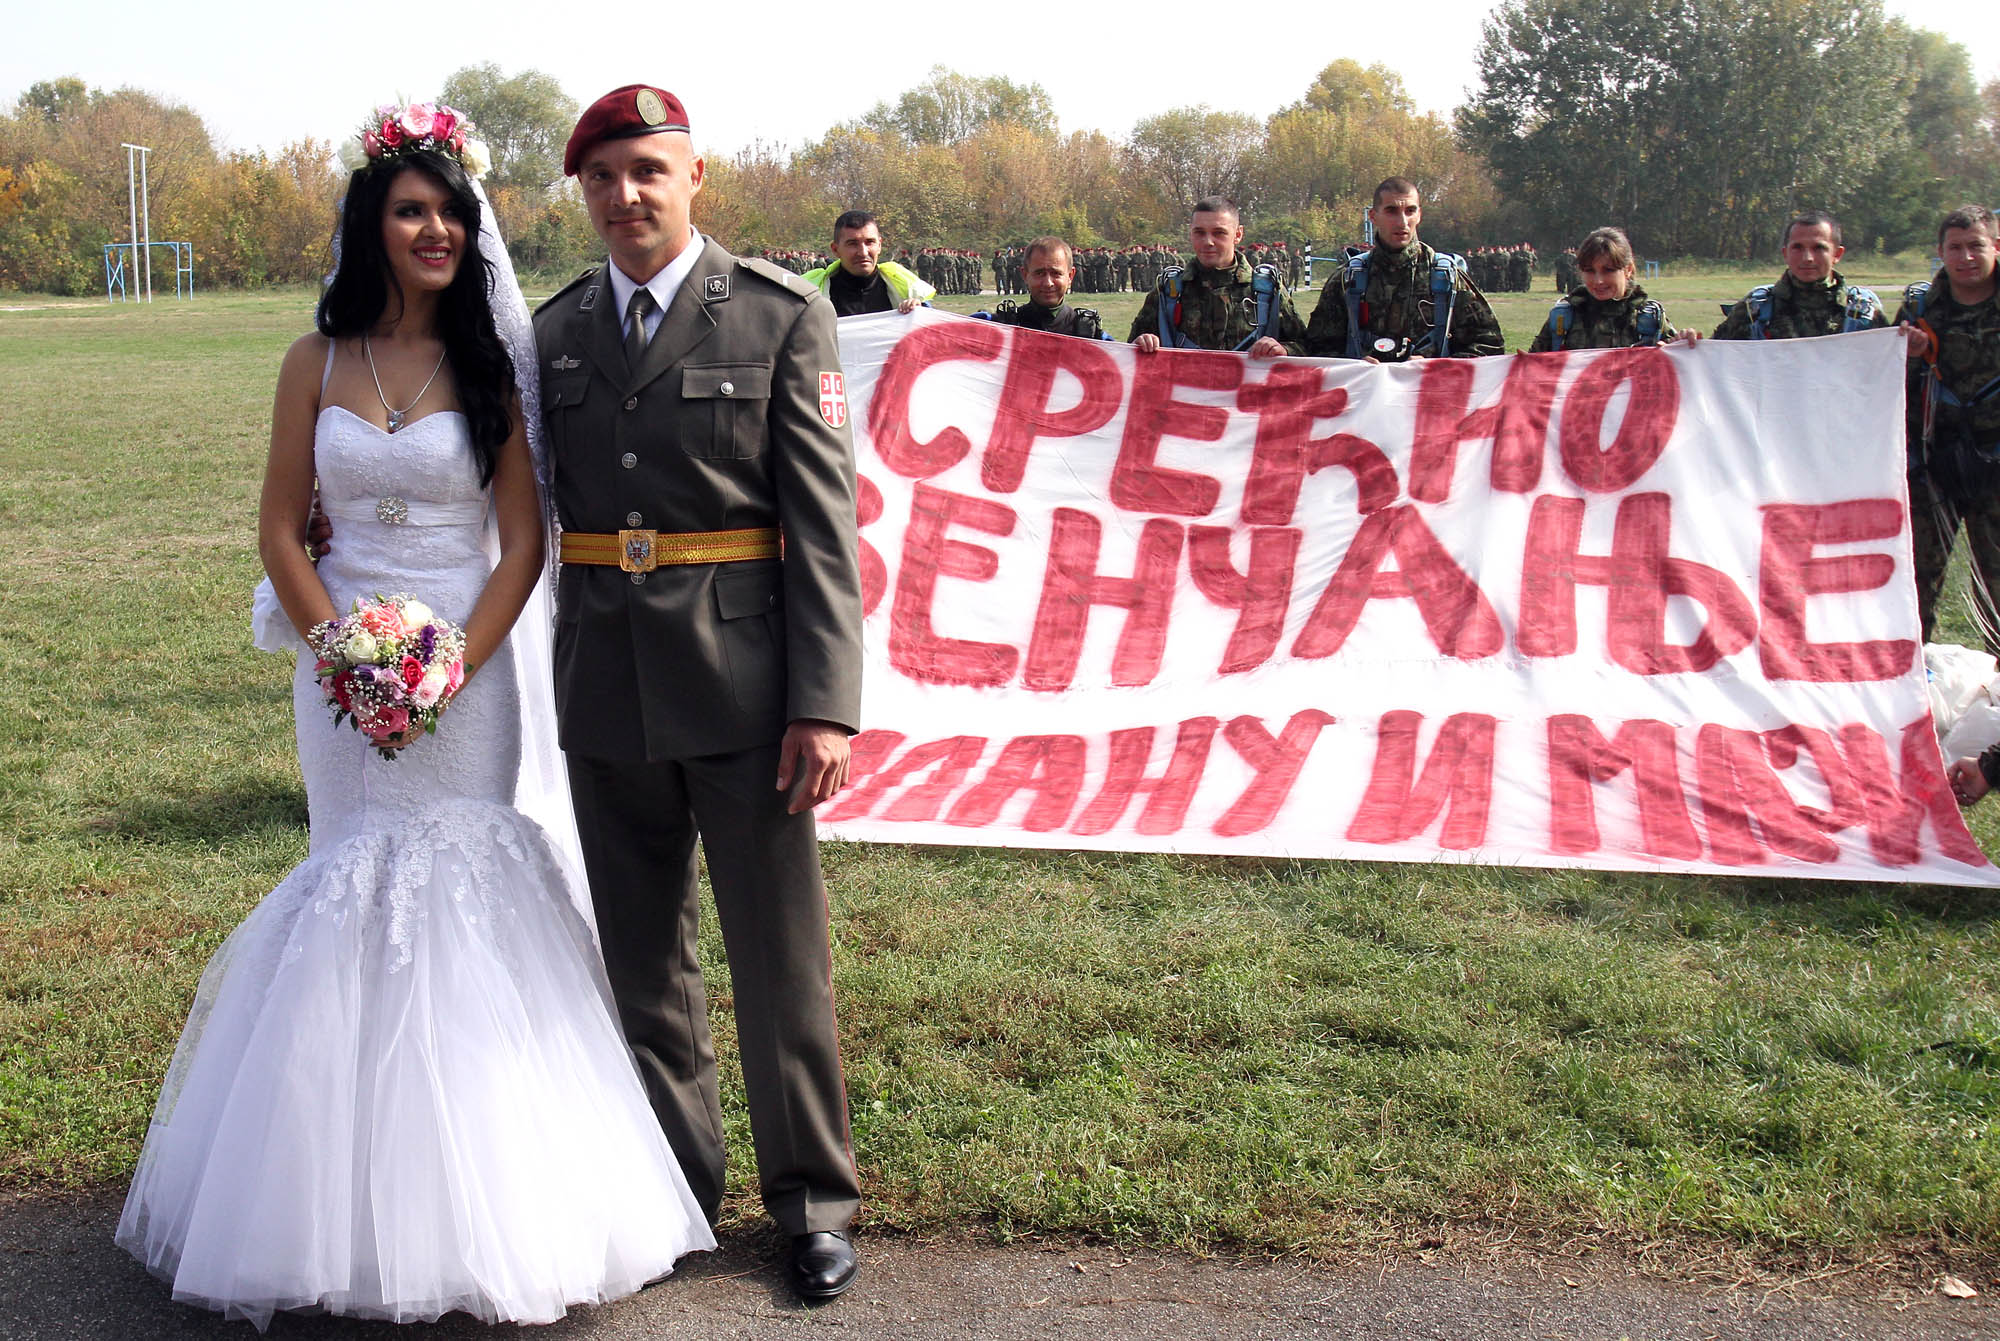 Wedding before the line of the 63rd Parachute Battalion